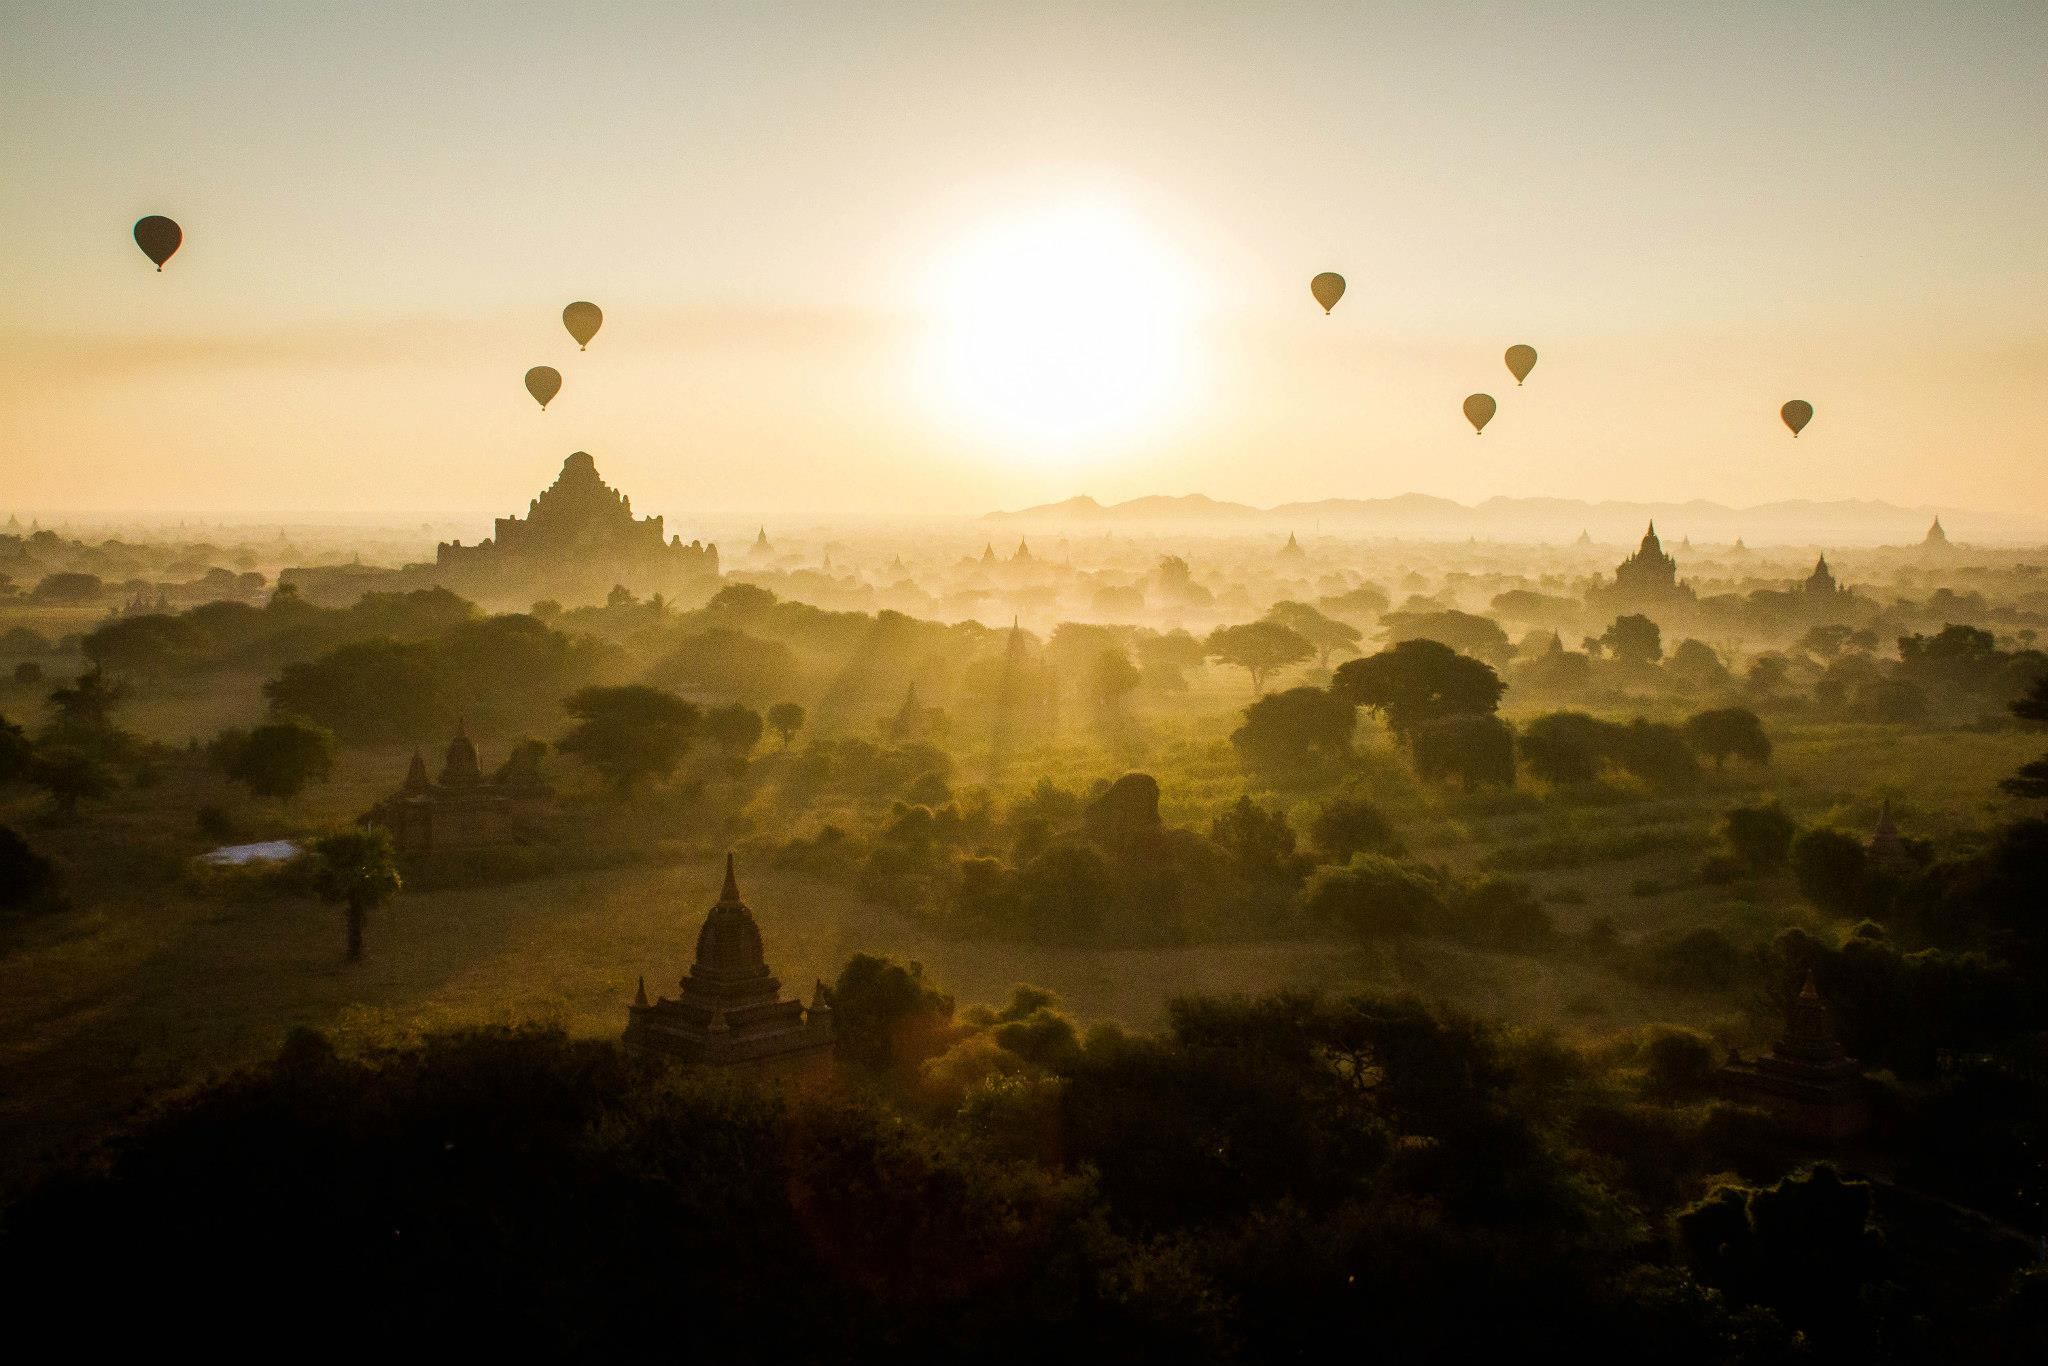 bagan-landscape-from-fb